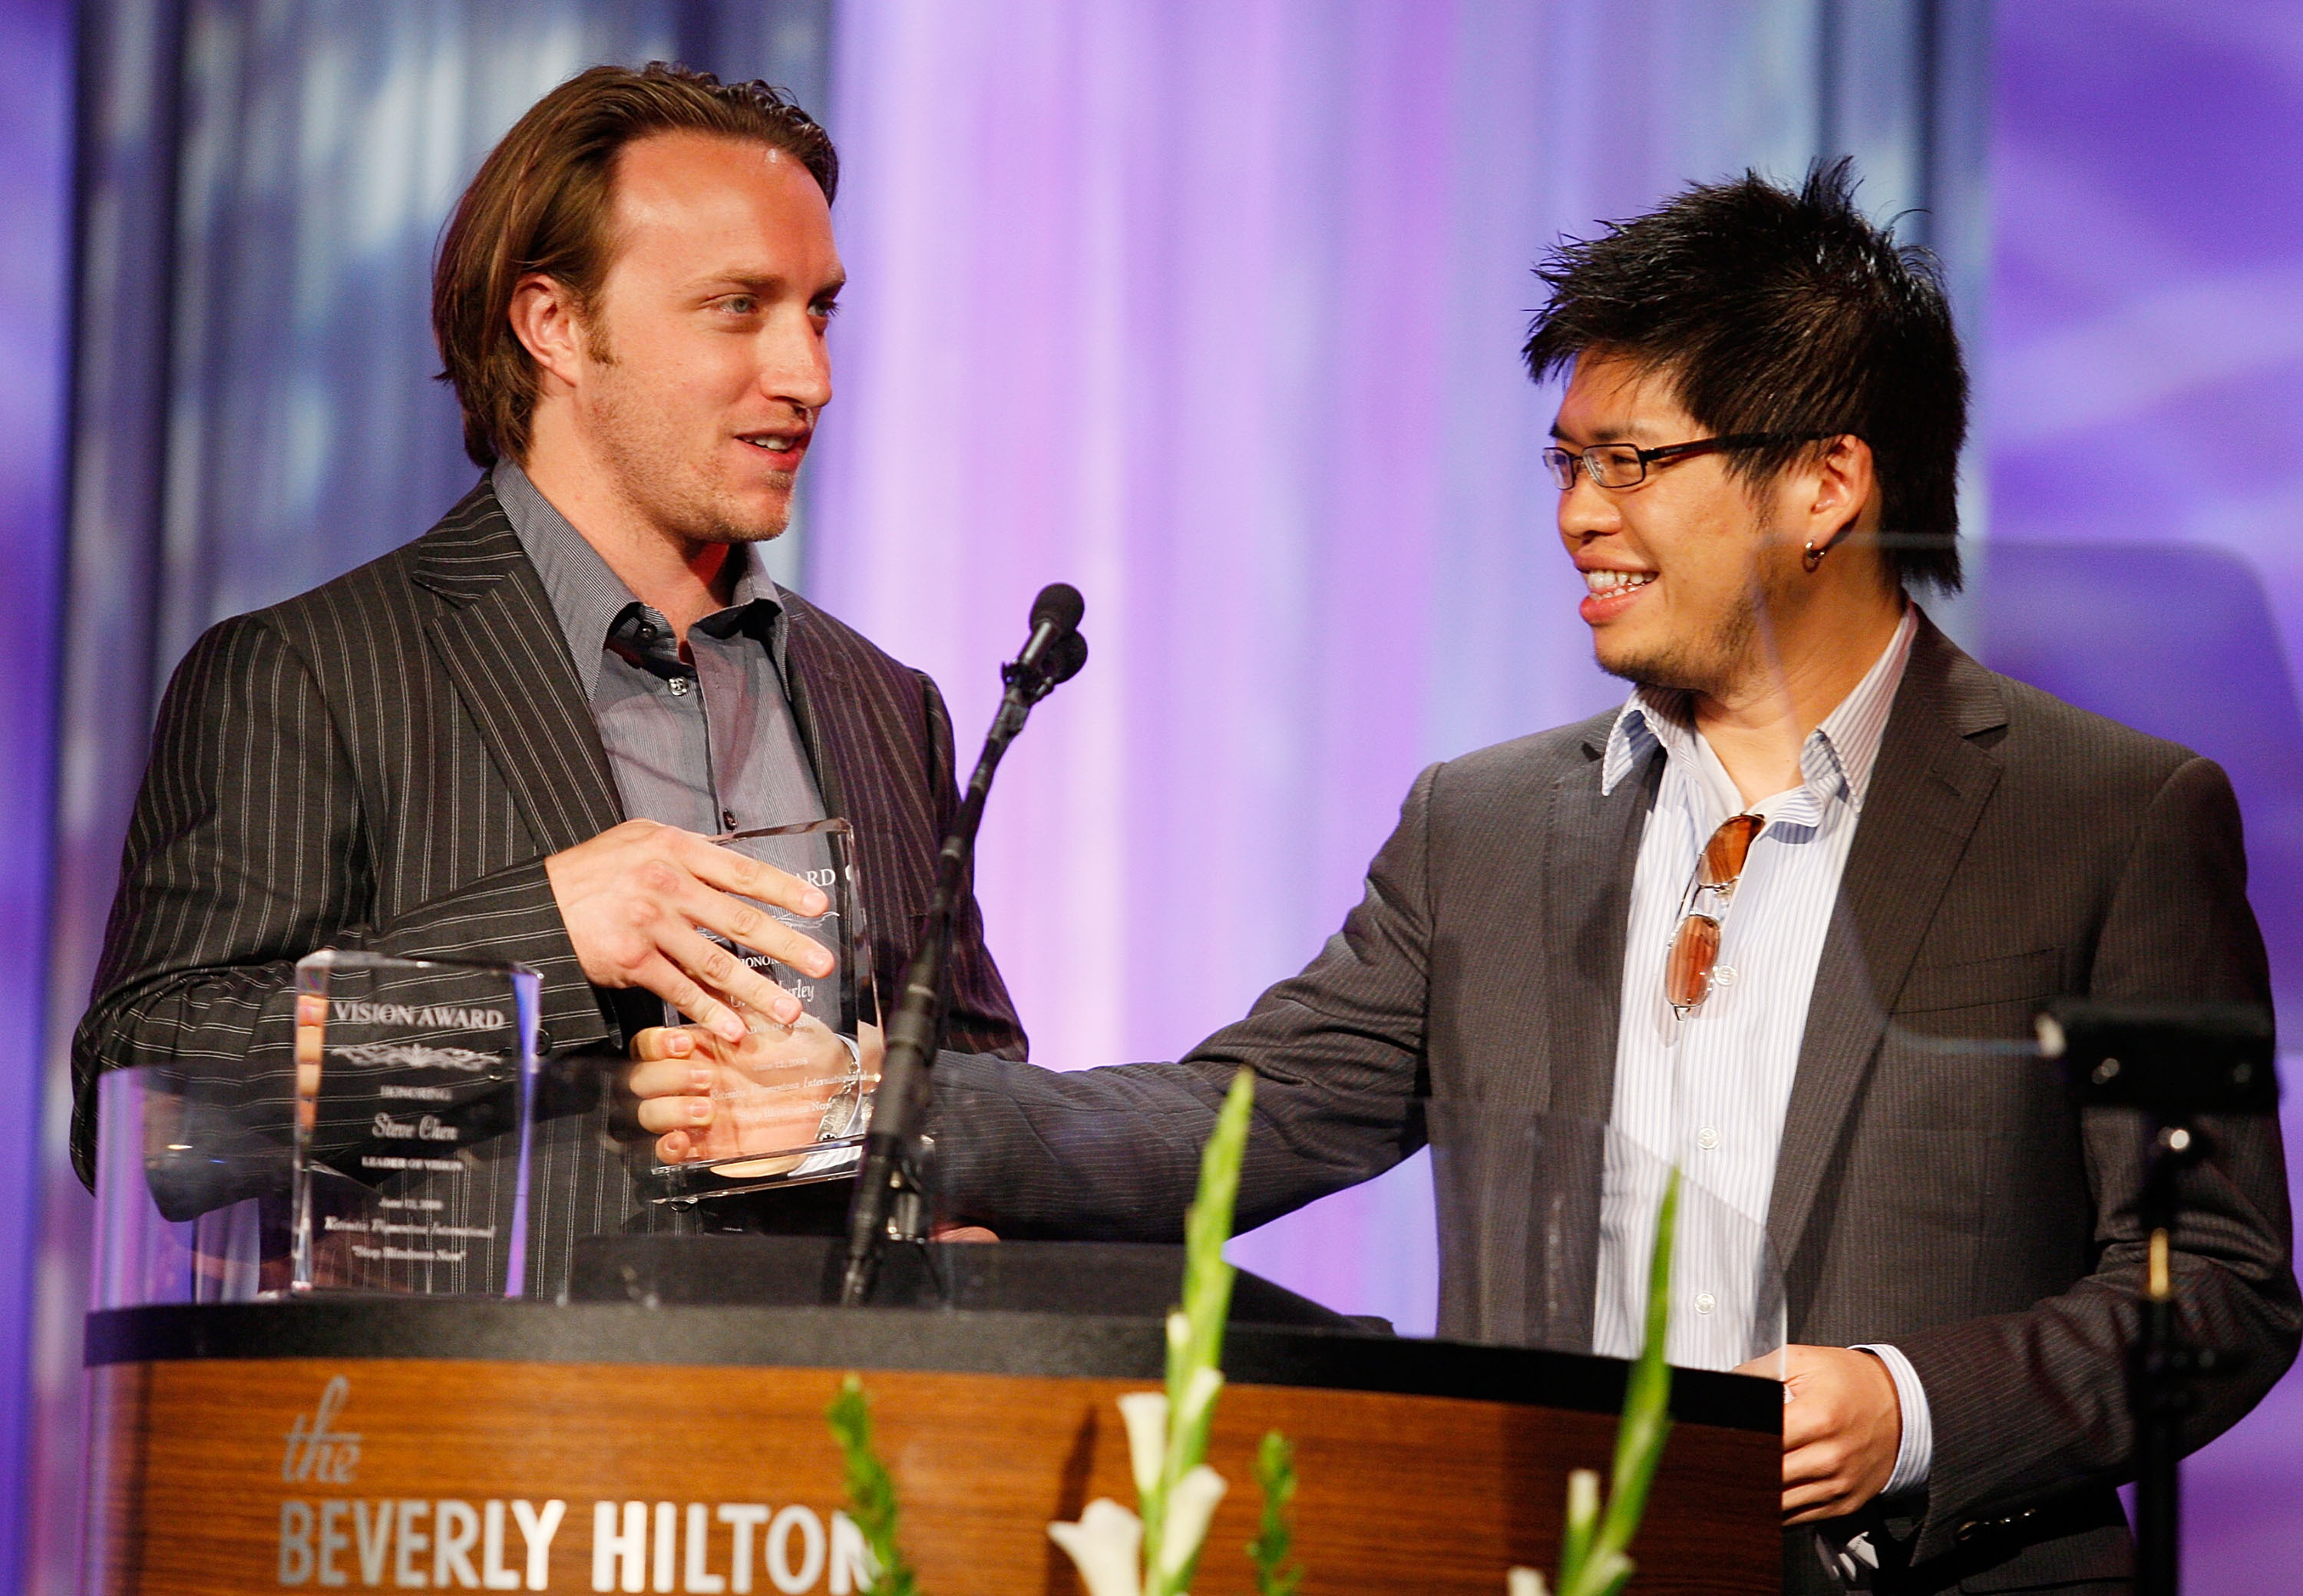 YouTube co-founders Chad Hurley and Steve Chen stand at a podium to accept an award in 2008.